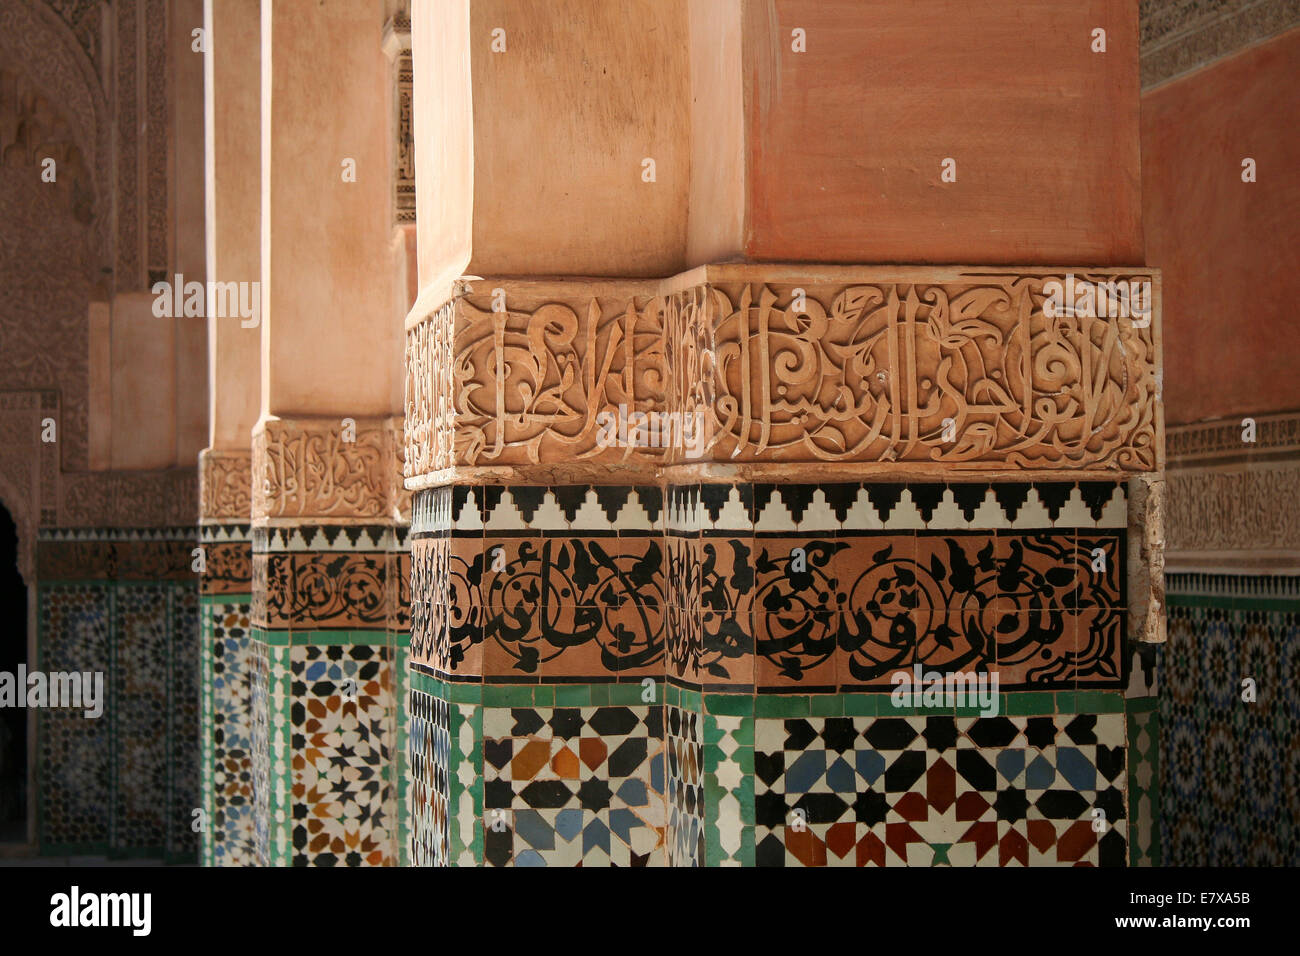 Inscription on the Pillars at Ben Youssef Madrasa in Marrakesh, Morocco - Stock Image